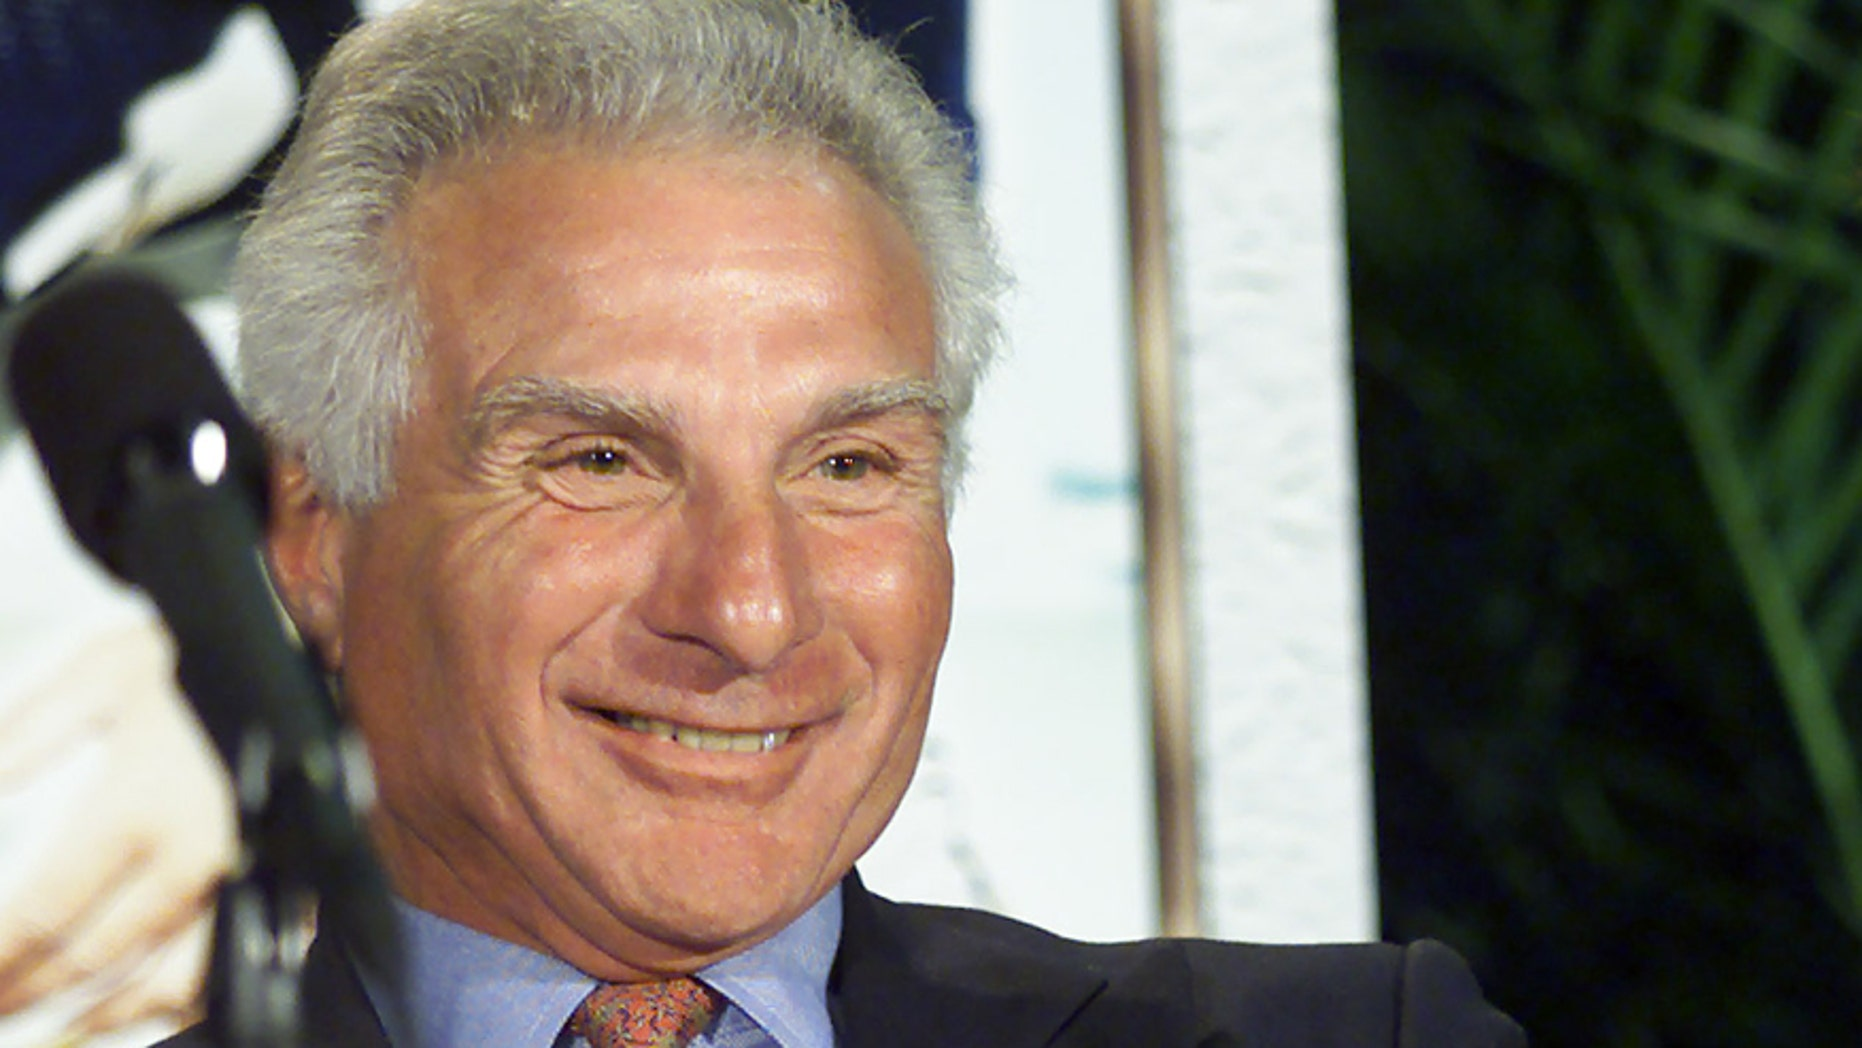 Jan. 27, 2001: Former New England Patriots and Miami Dolphins linebacker Nick Buoniconti is pictured after learning that he had been elected to the Pro Football Hall of Fame.